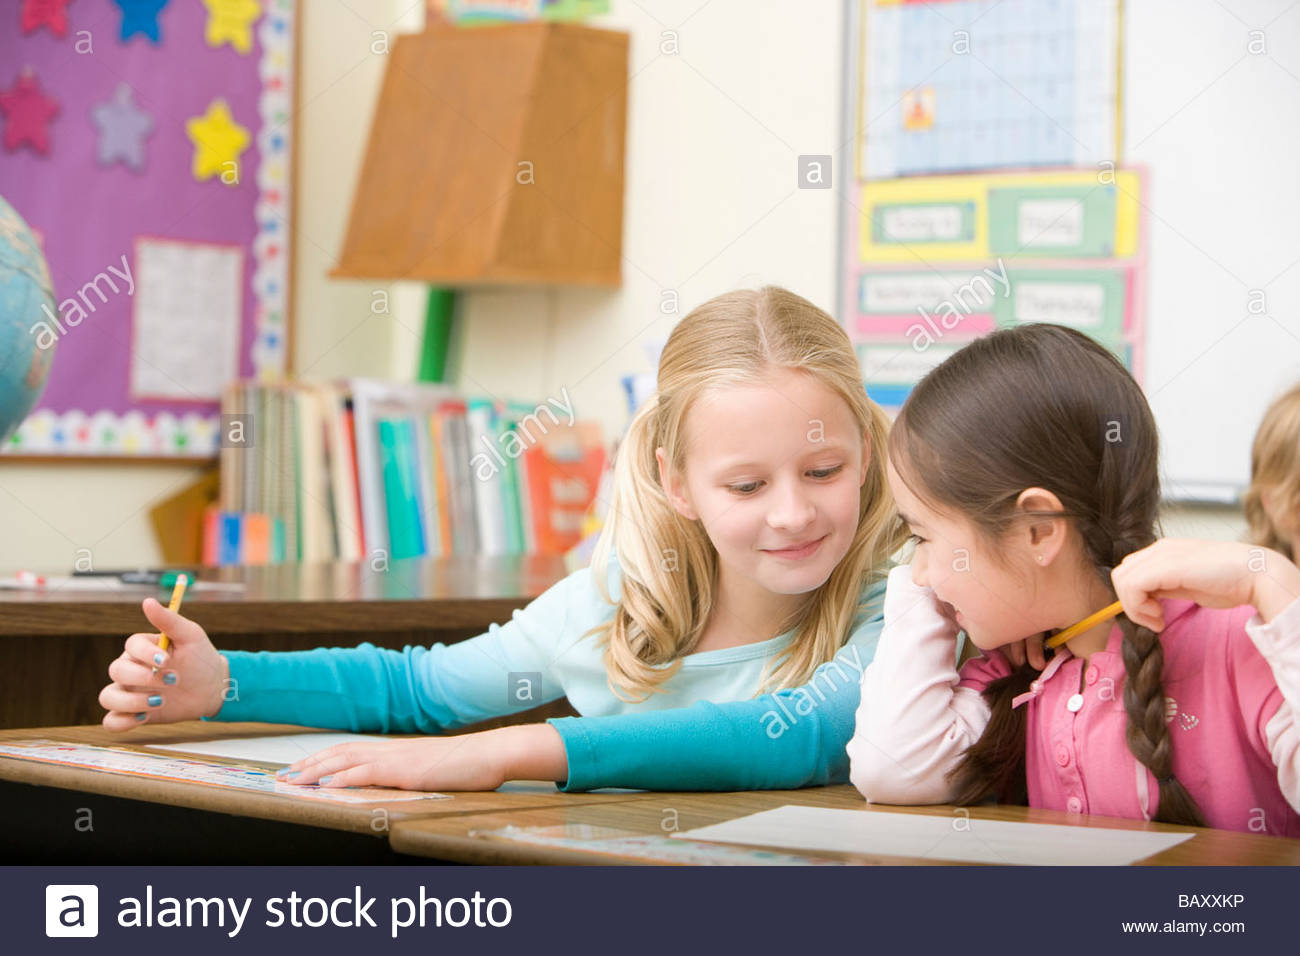 Girl cheating from friend's paper on test - Stock Image